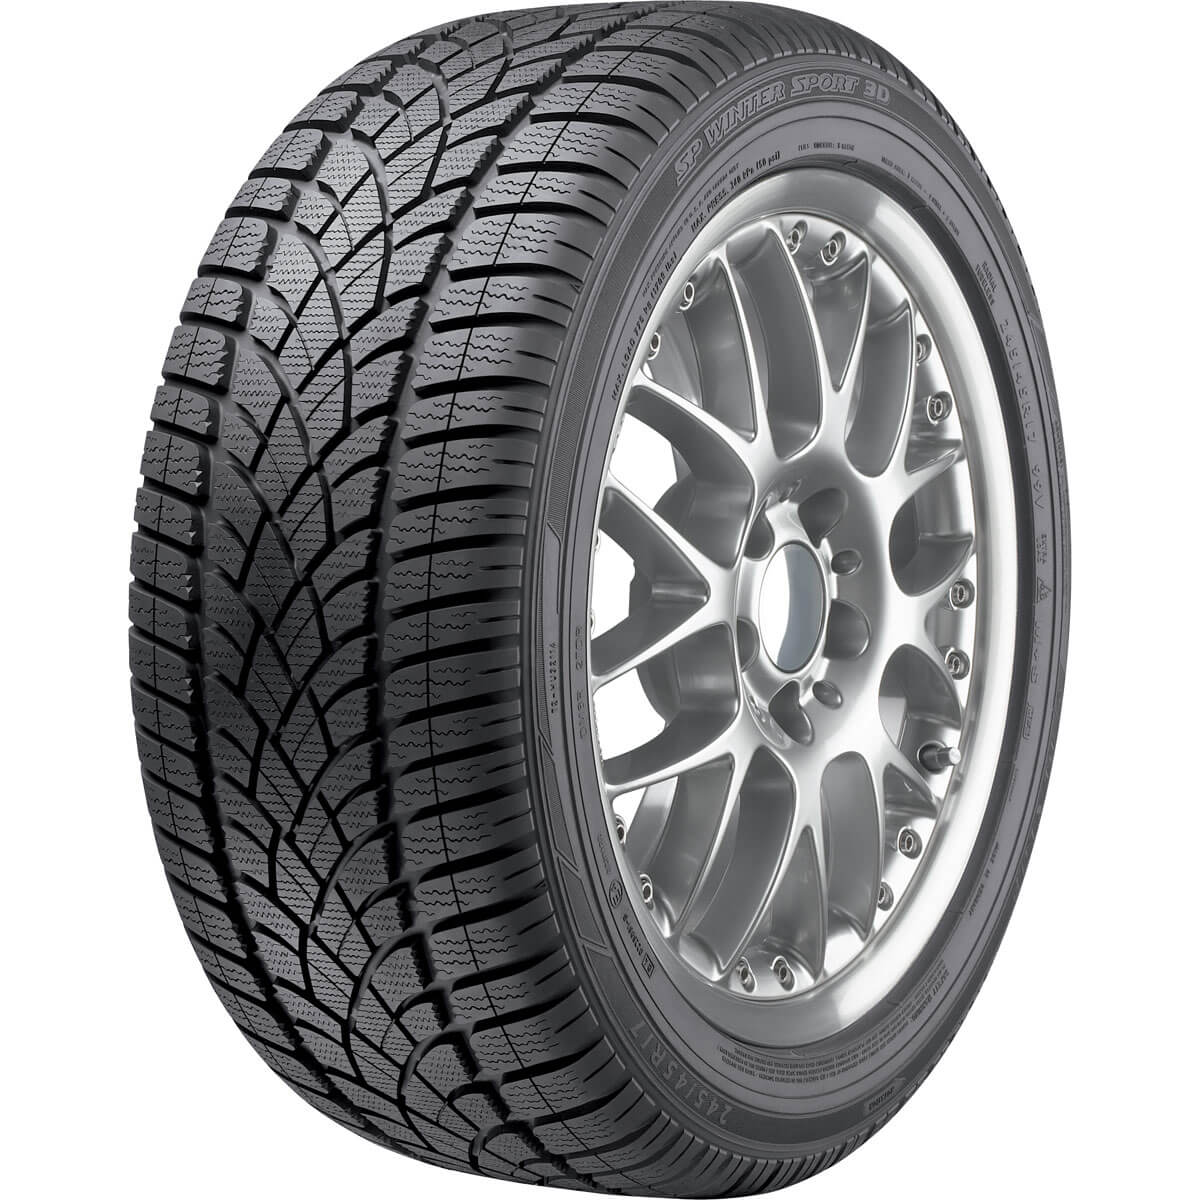 Dunlop sp winter sport 3D 235/55 R18